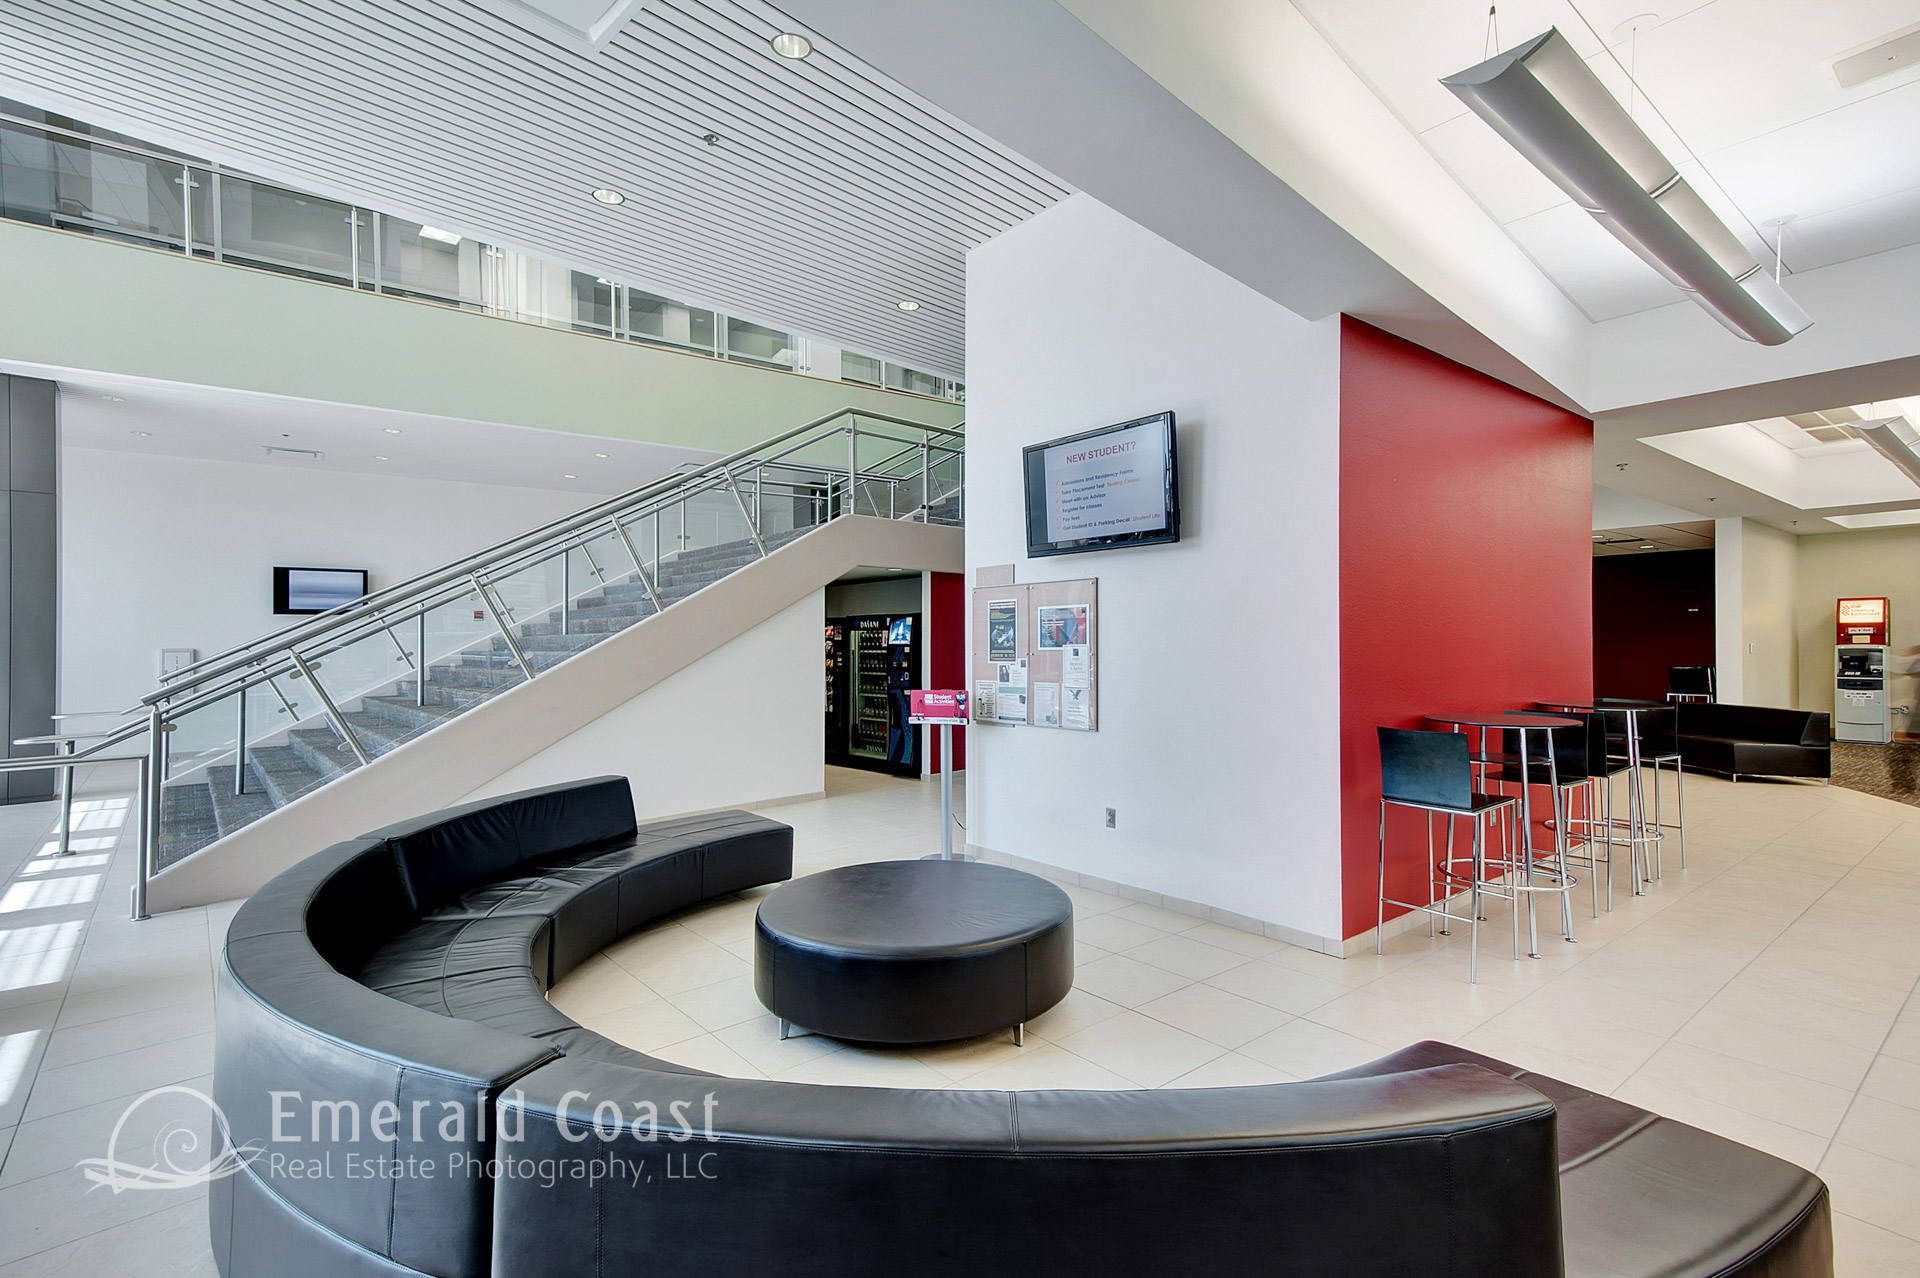 Lobby area of Northwest Florida State Student Life Center